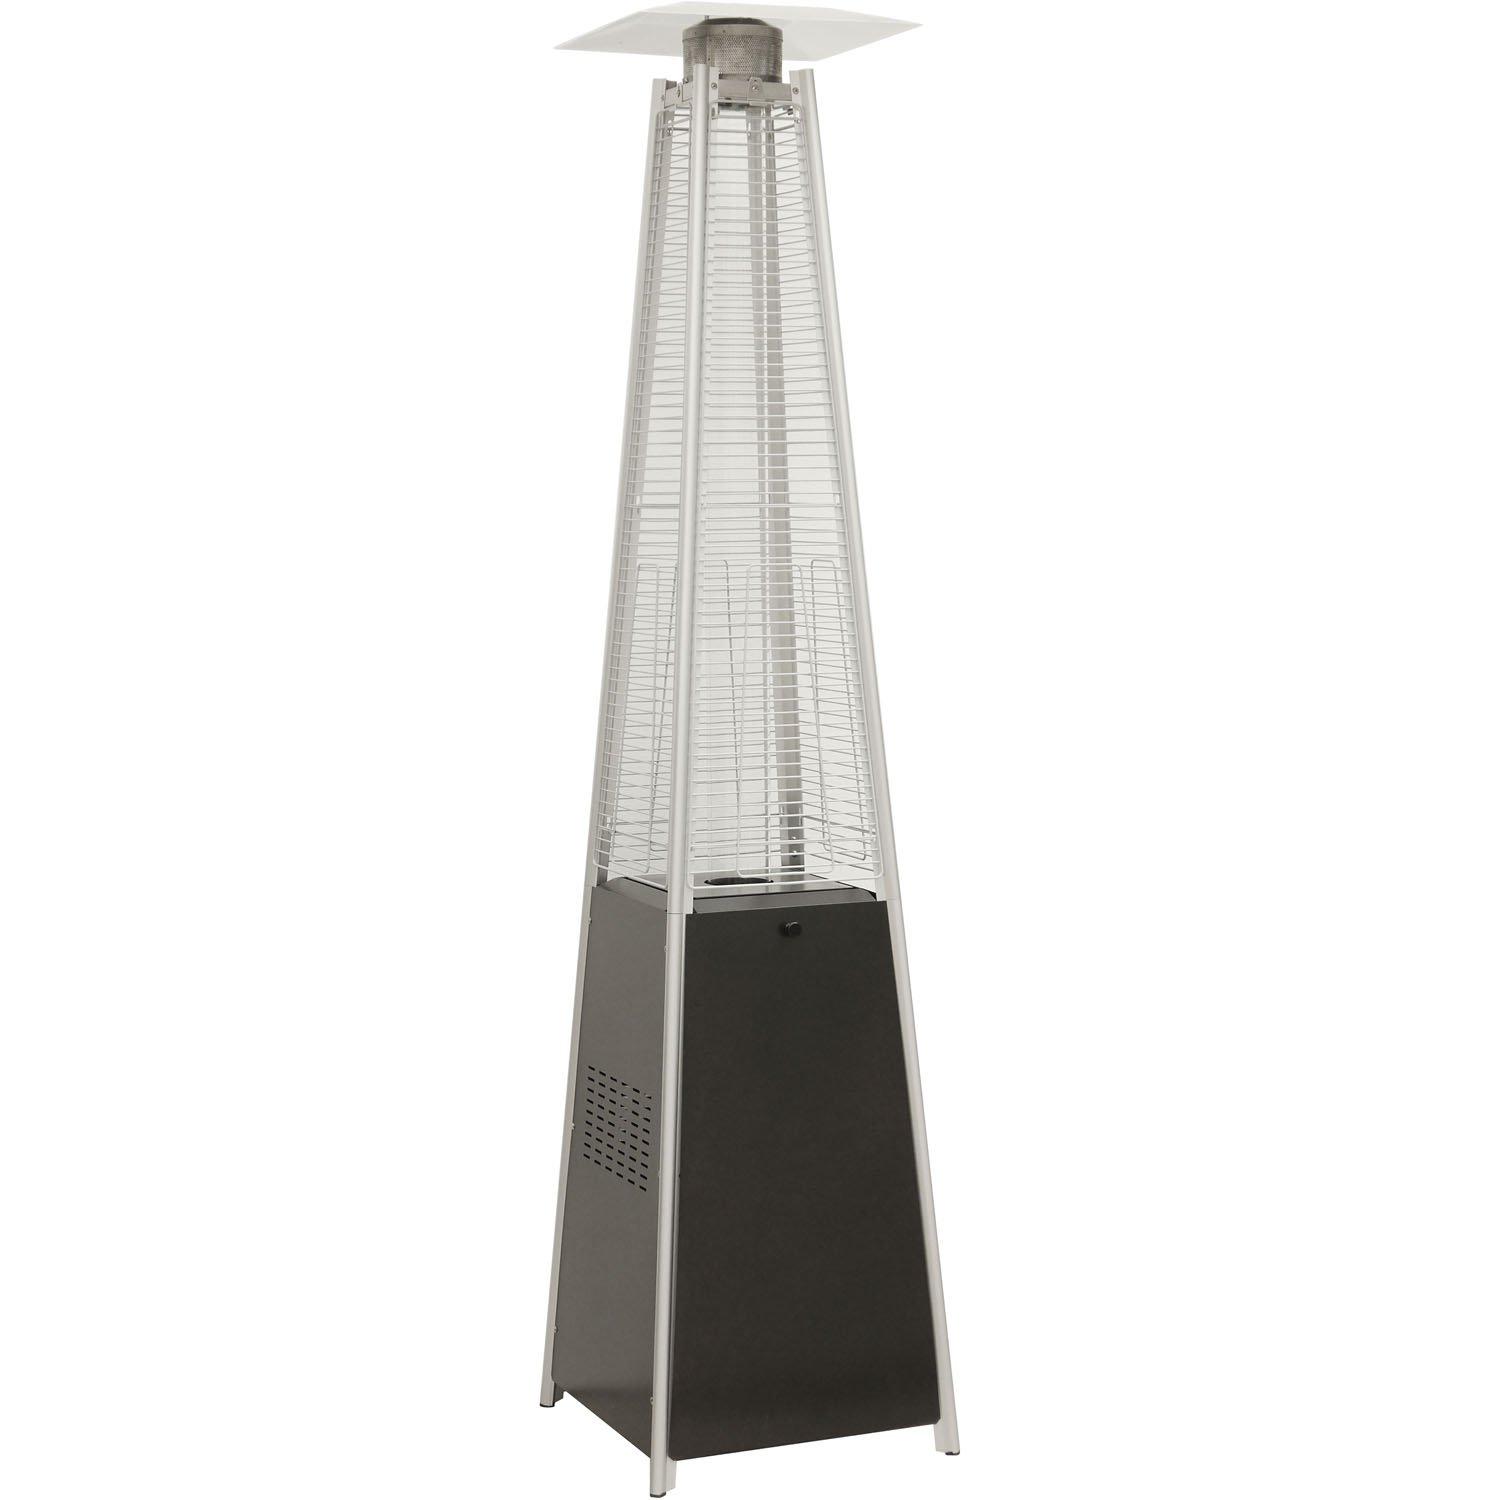 Hanover 42000 BTU Pyramid Propane Patio Heater, 7', Black